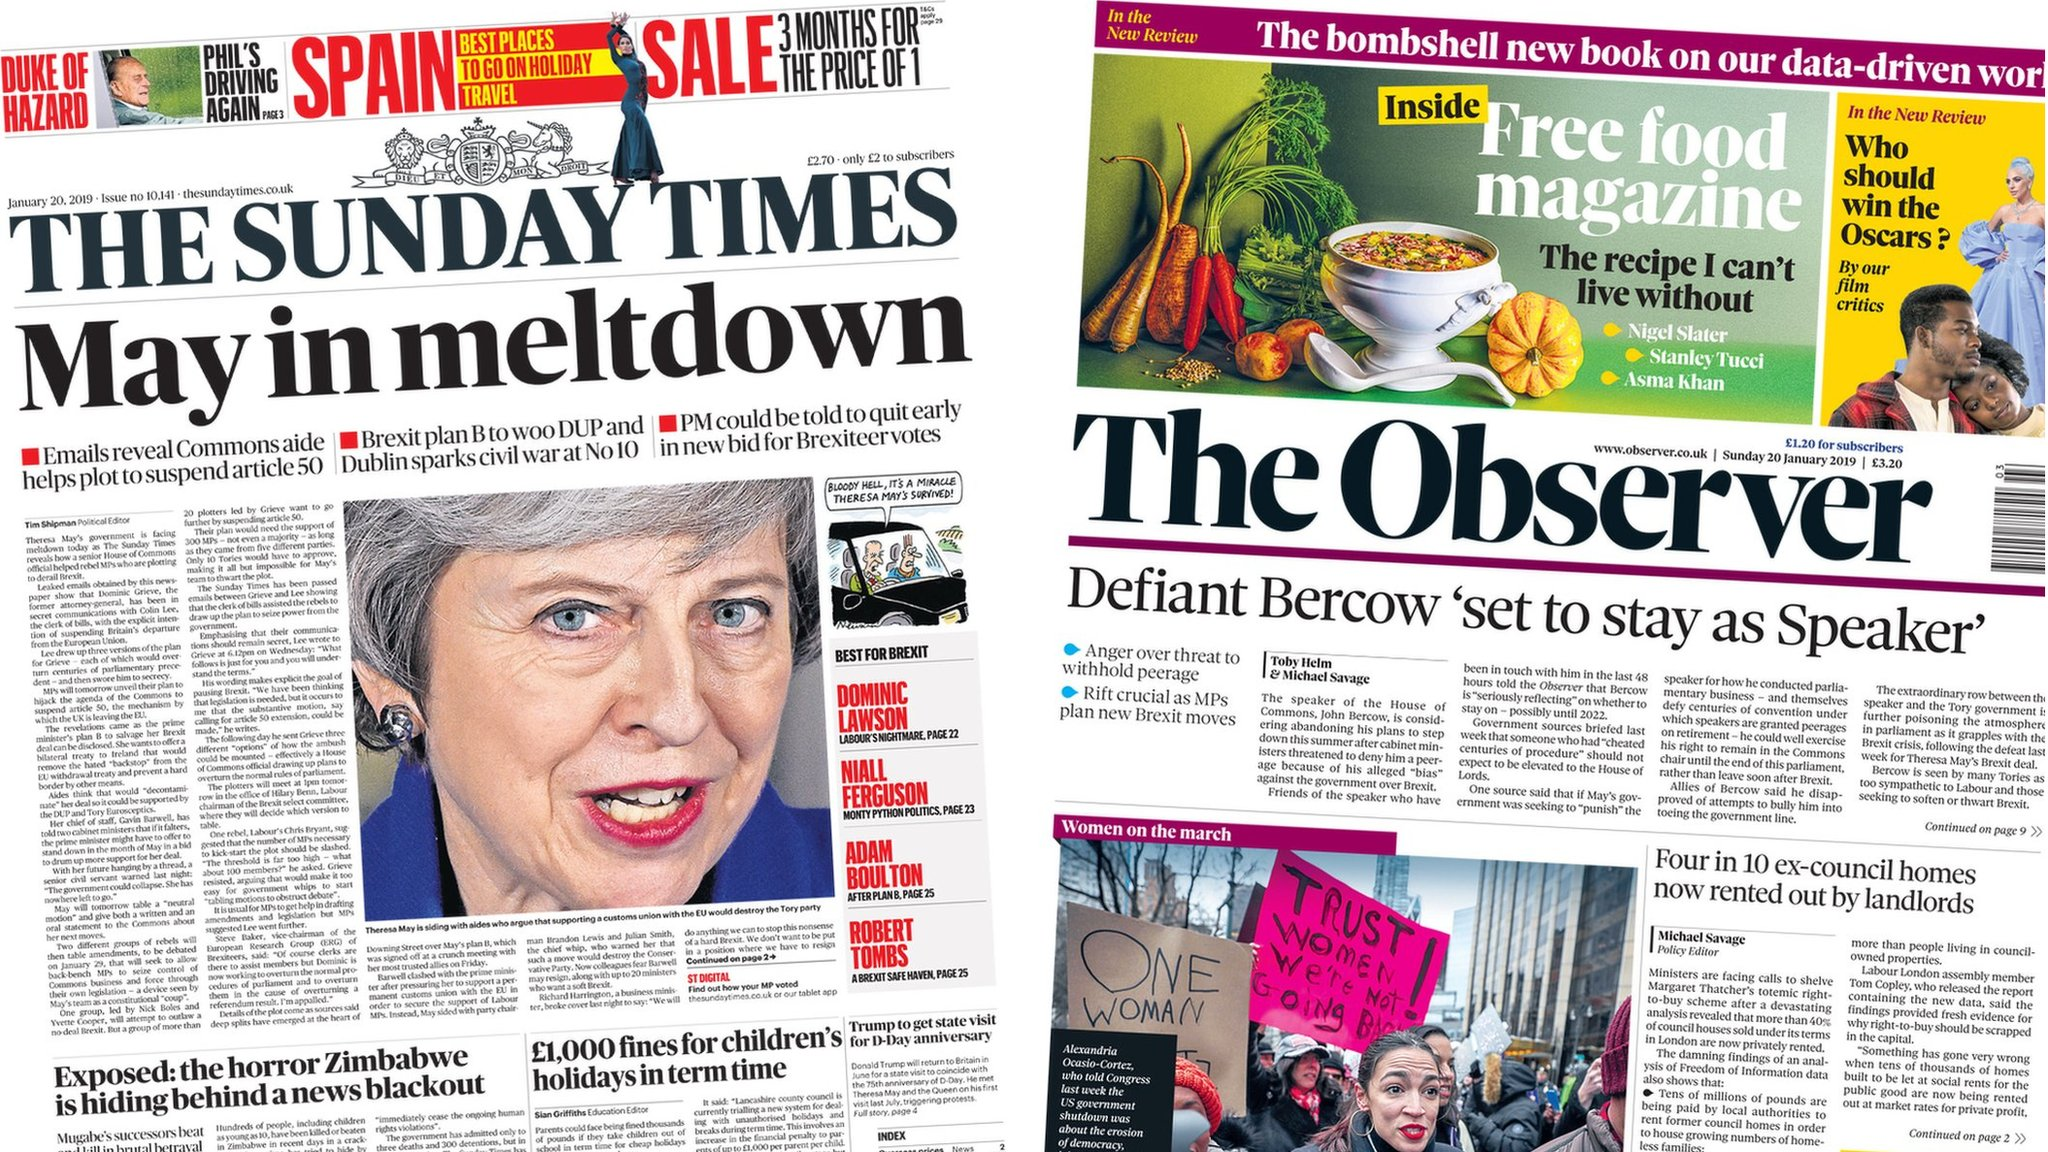 The Papers: 'May in meltdown' and Bercow 'may stay as speaker'